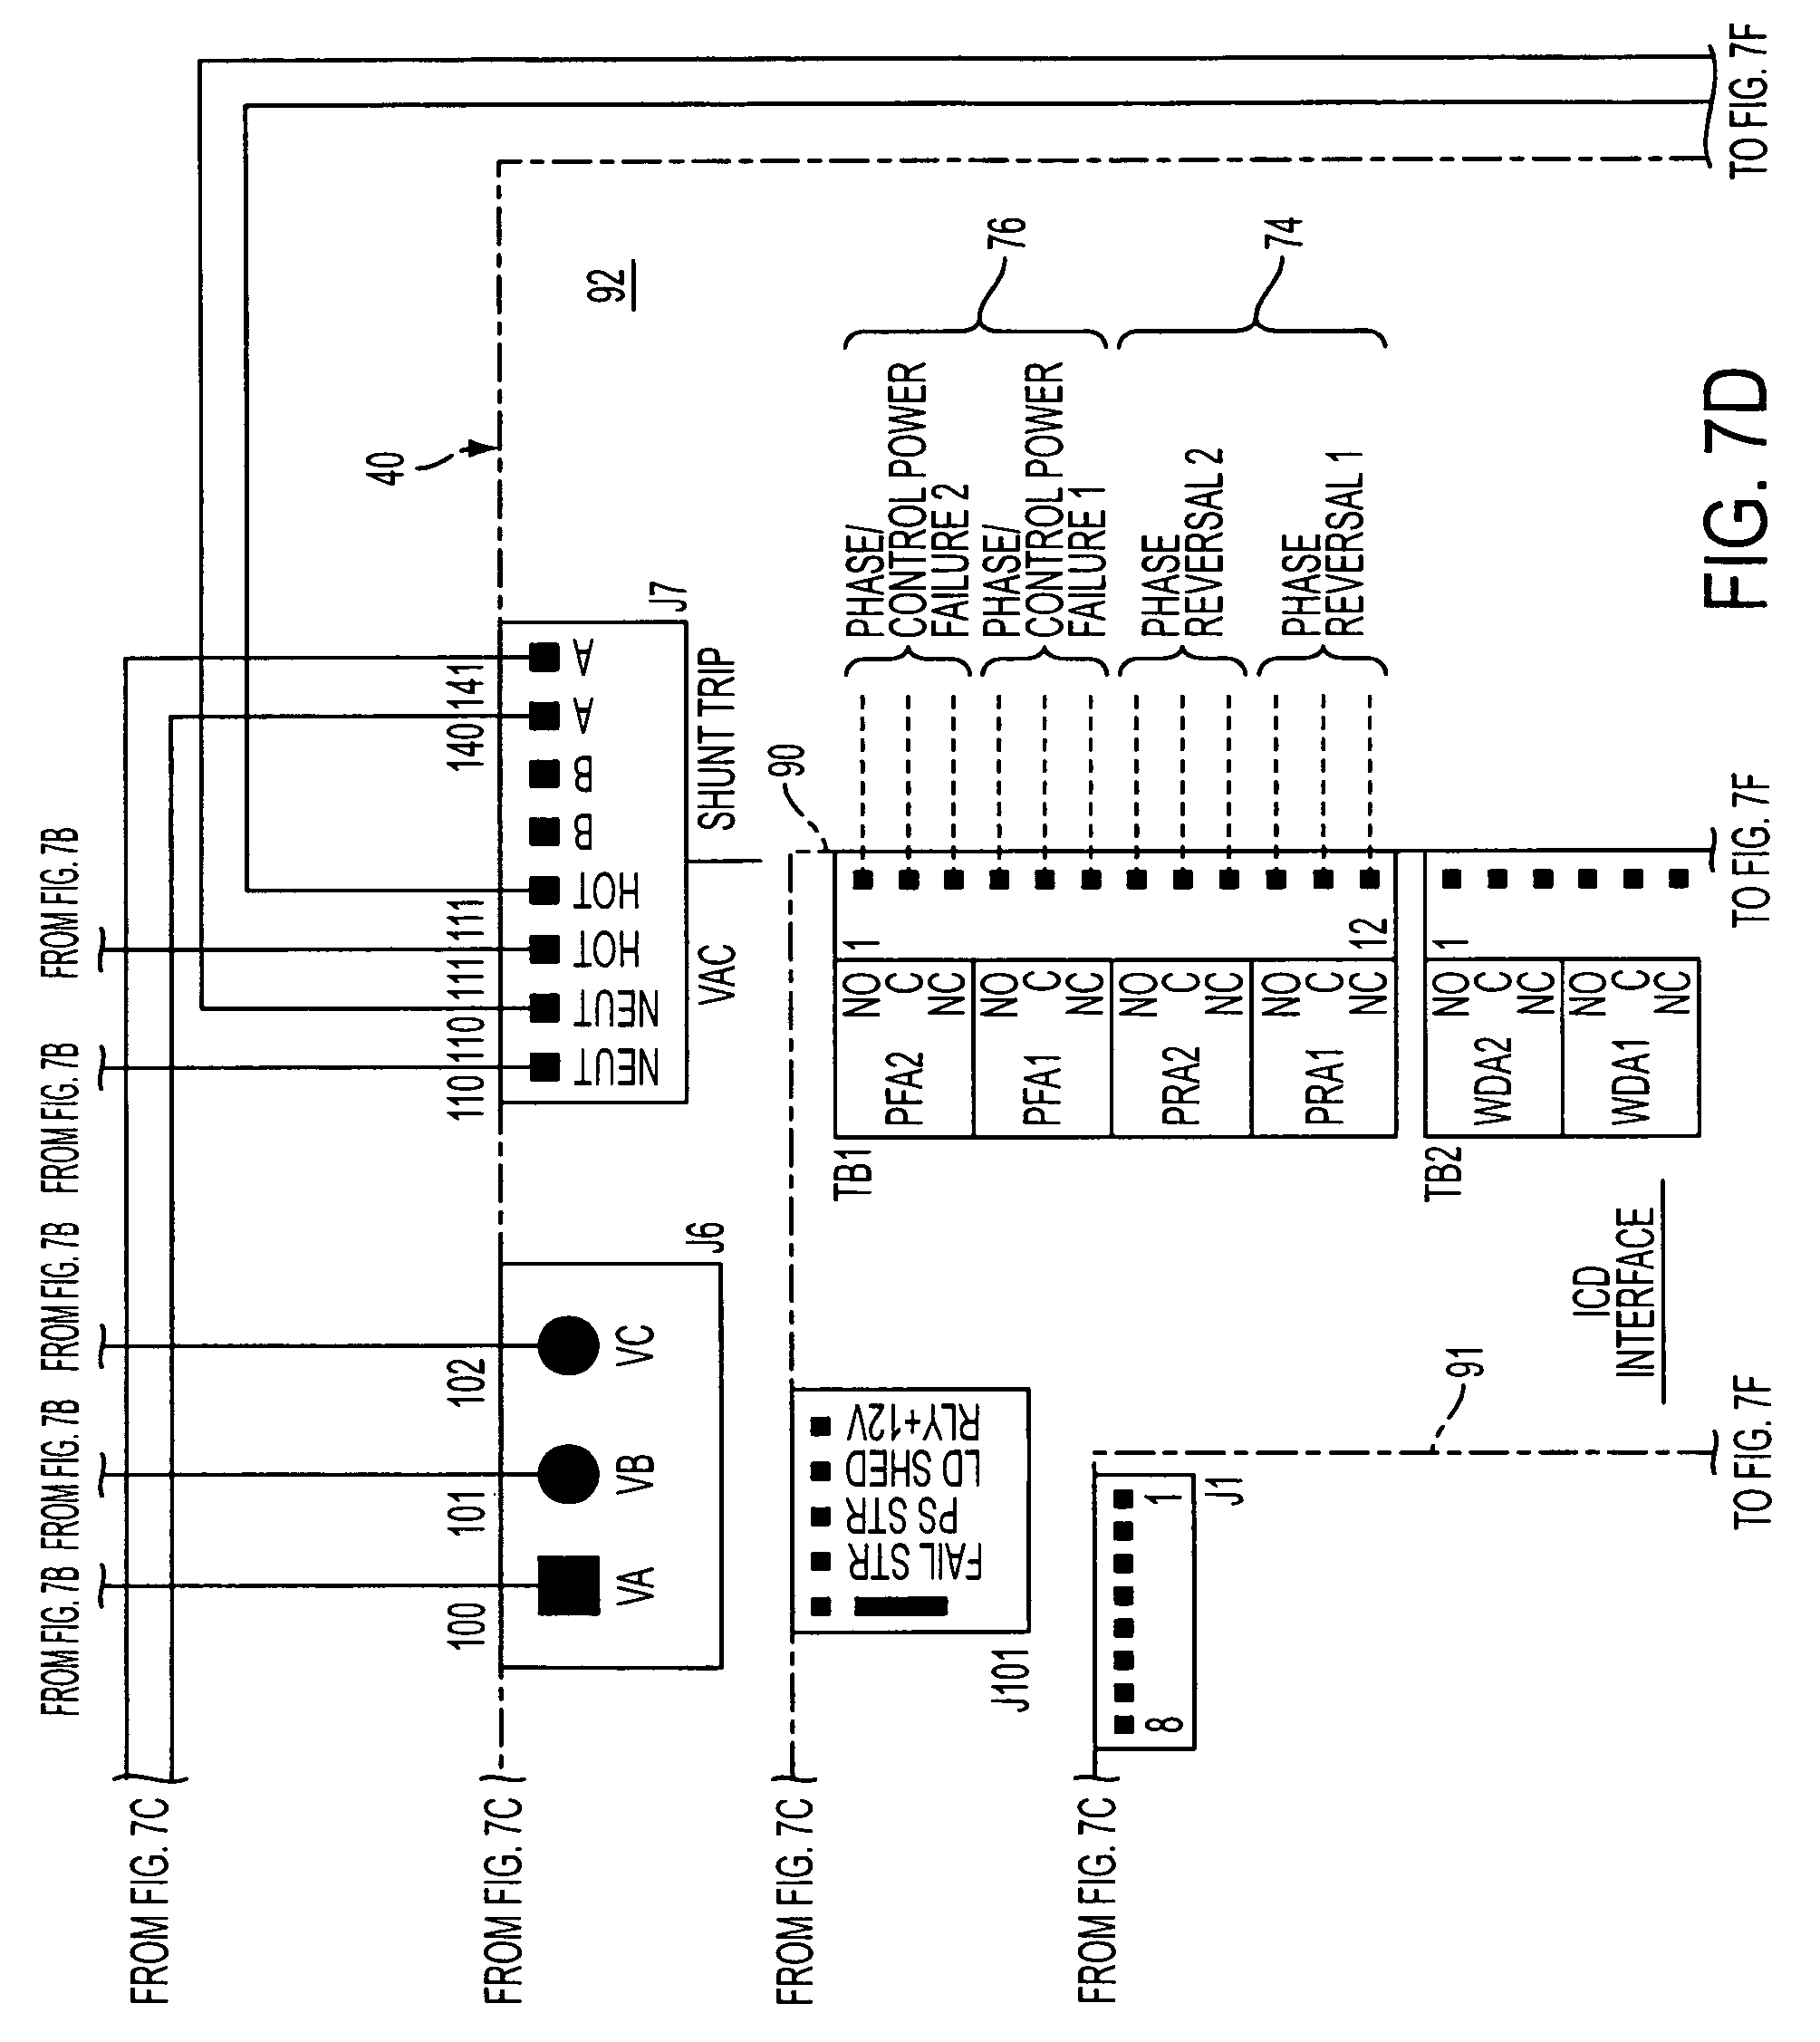 fire pump control panel wiring diagram 98 gmc jimmy radio patent us7762786 integrated controller and